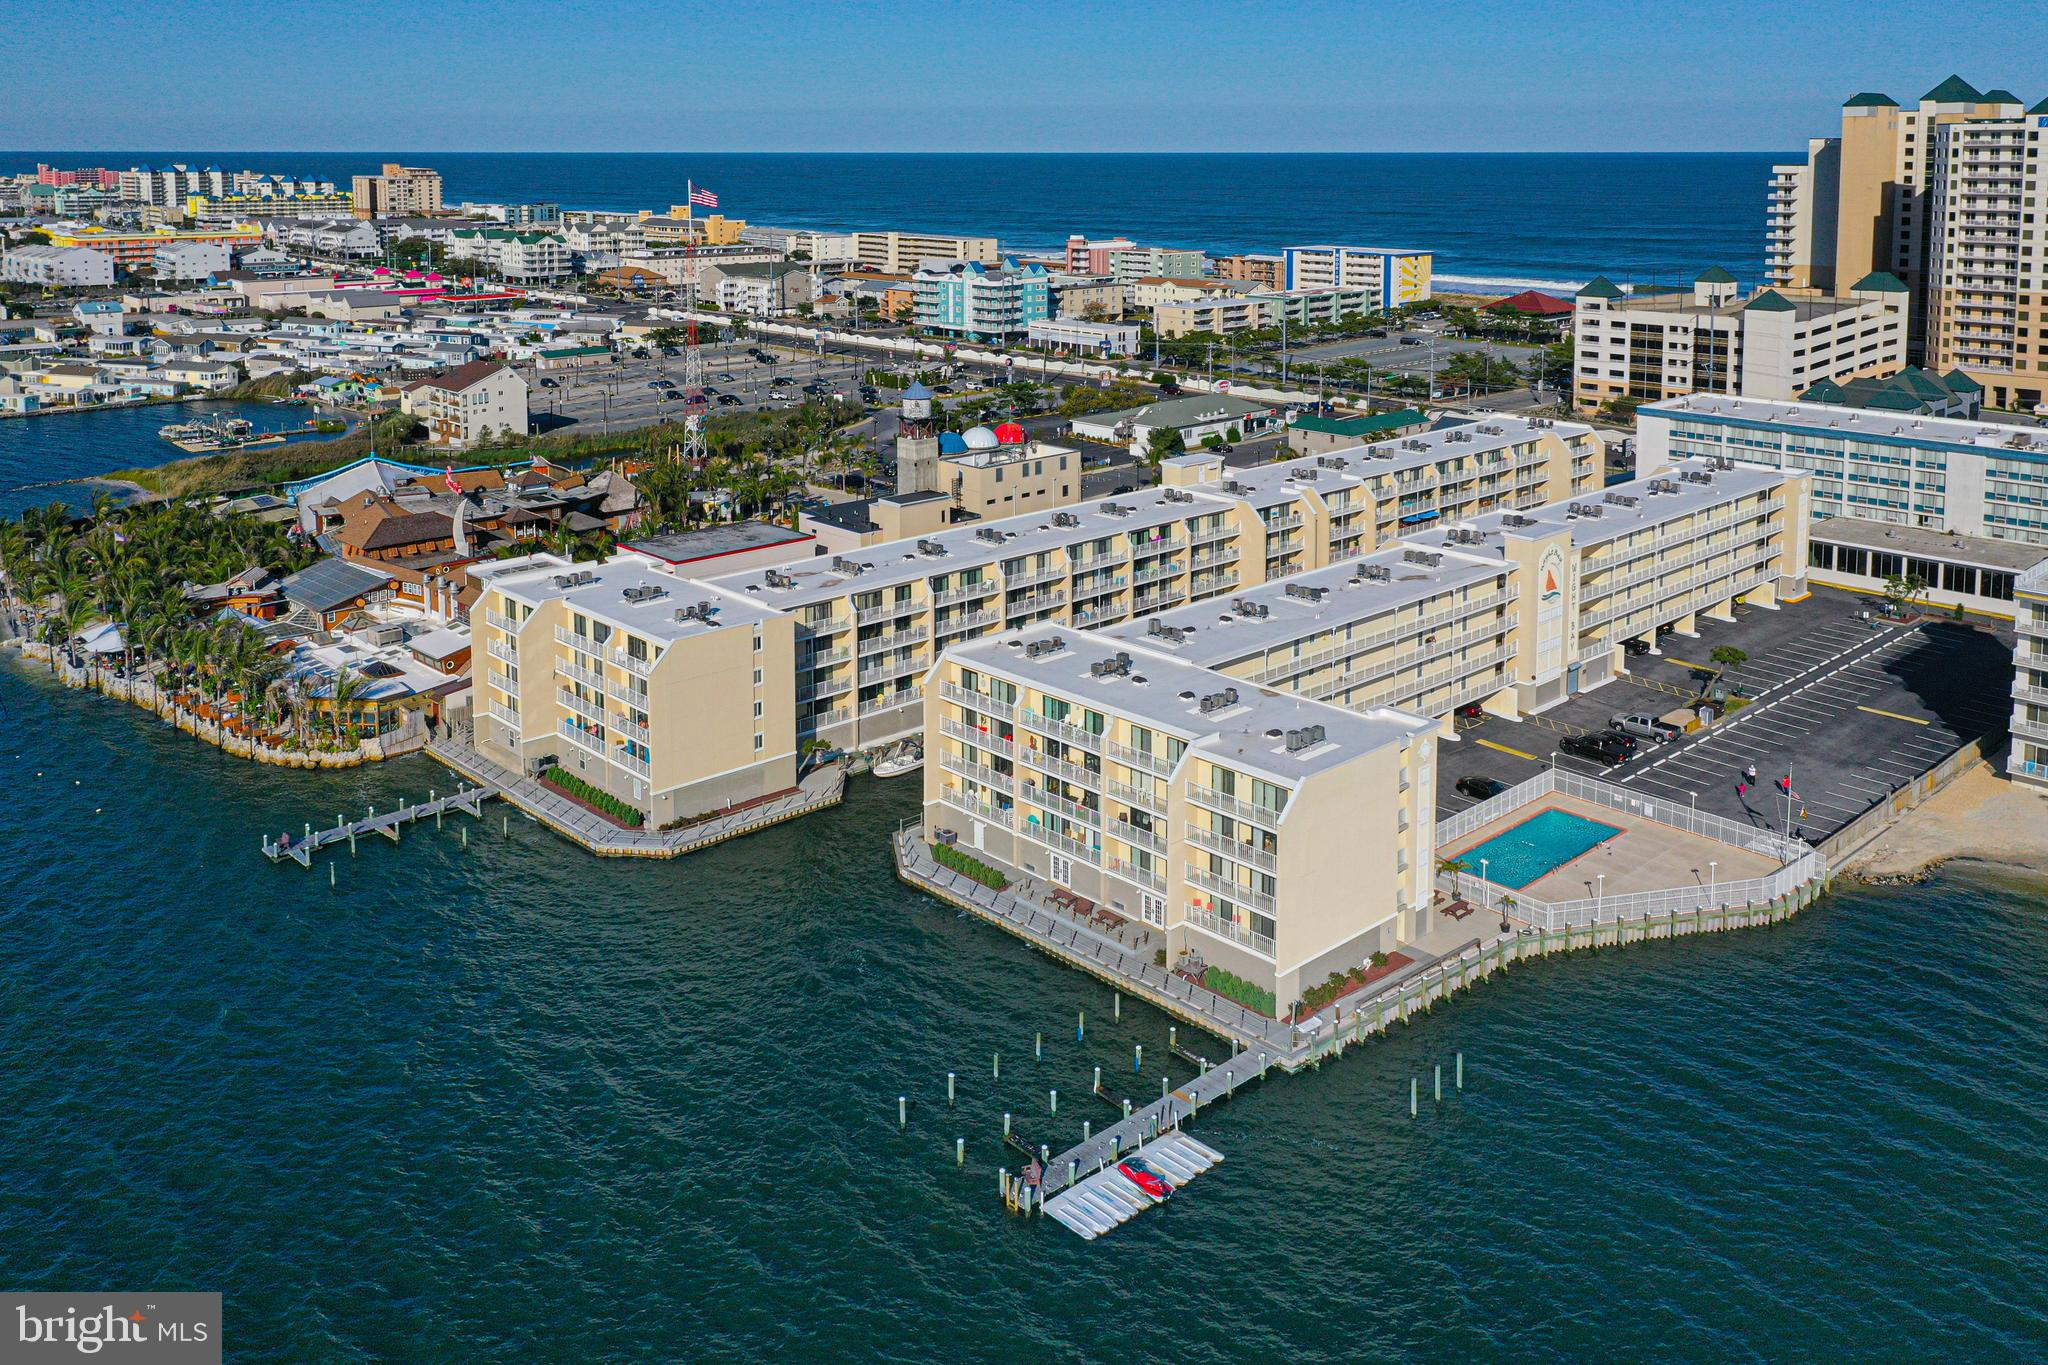 Bring Your BOAT!  Enjoy this Waterfront WOW! Spend YOUR Coastal Days Right Here! This Amazing Gem is